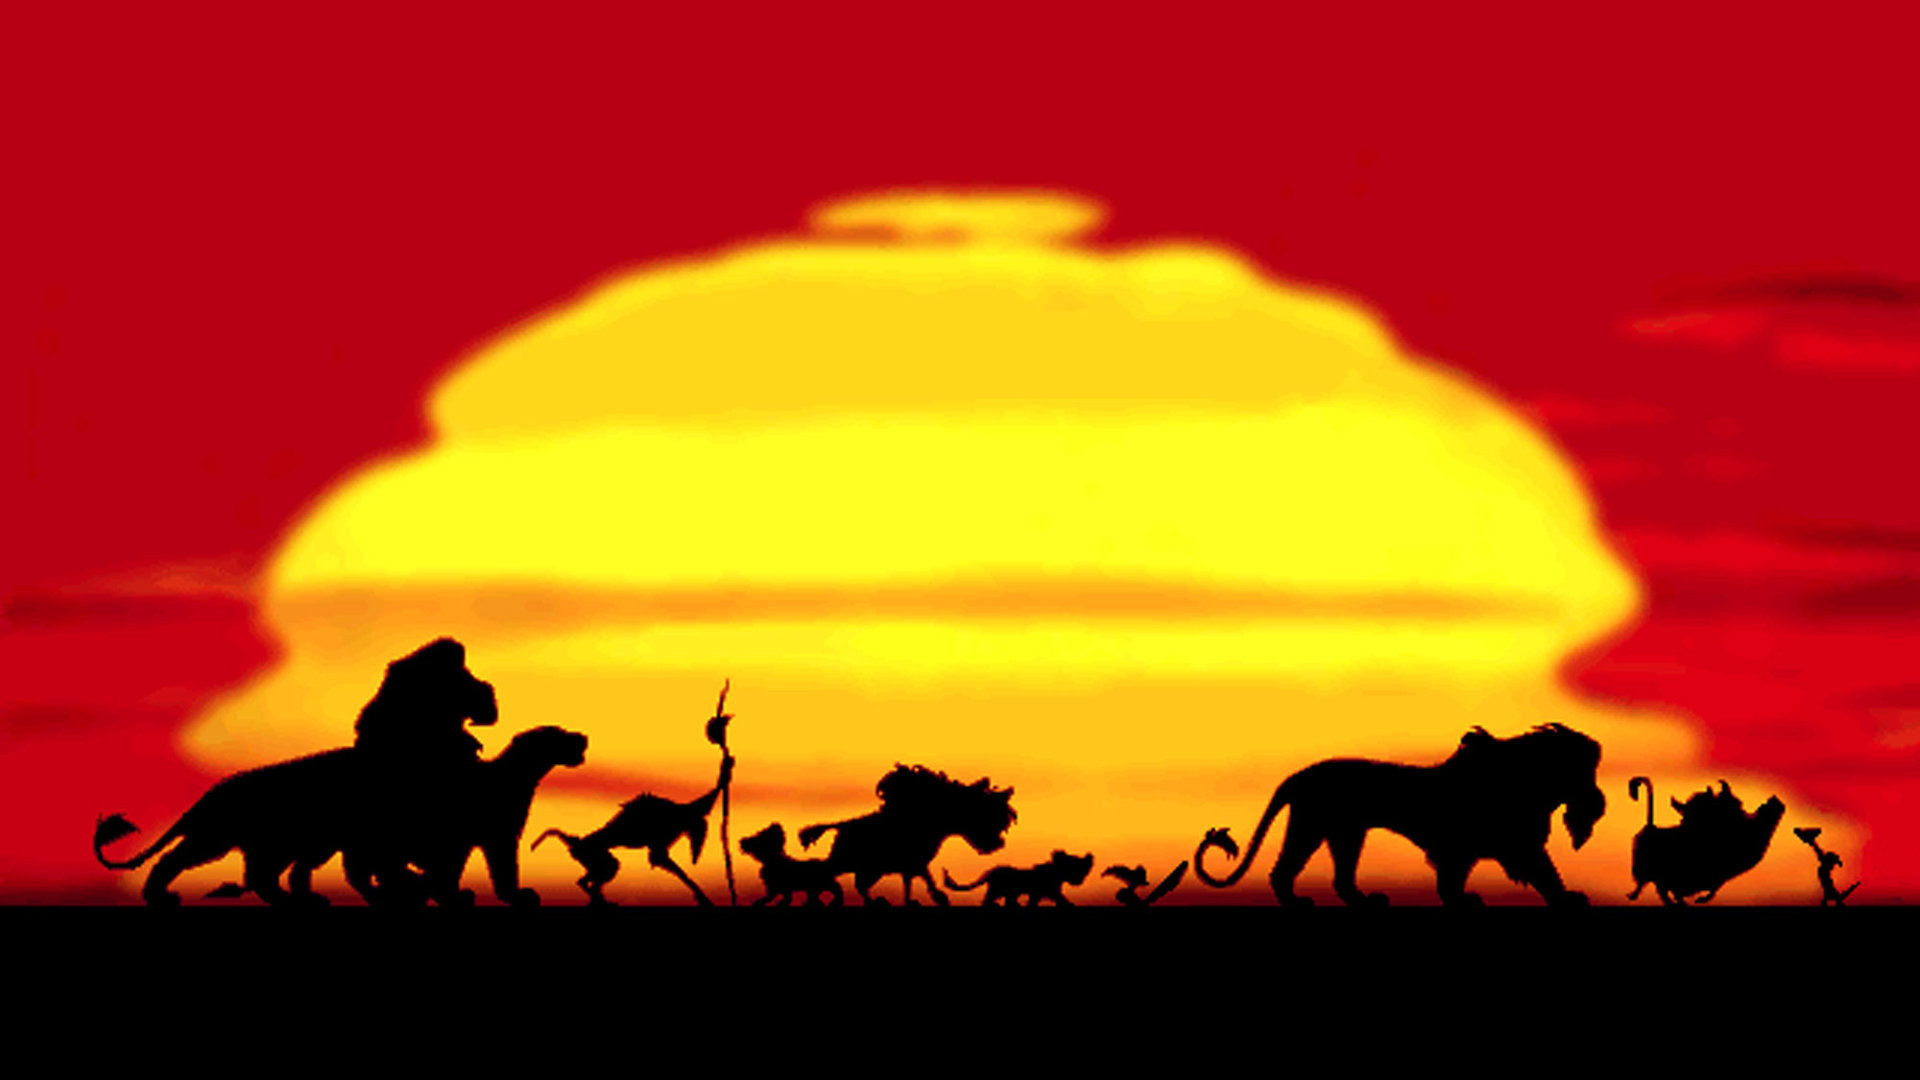 The Lion King - Cartoons Wallpapers